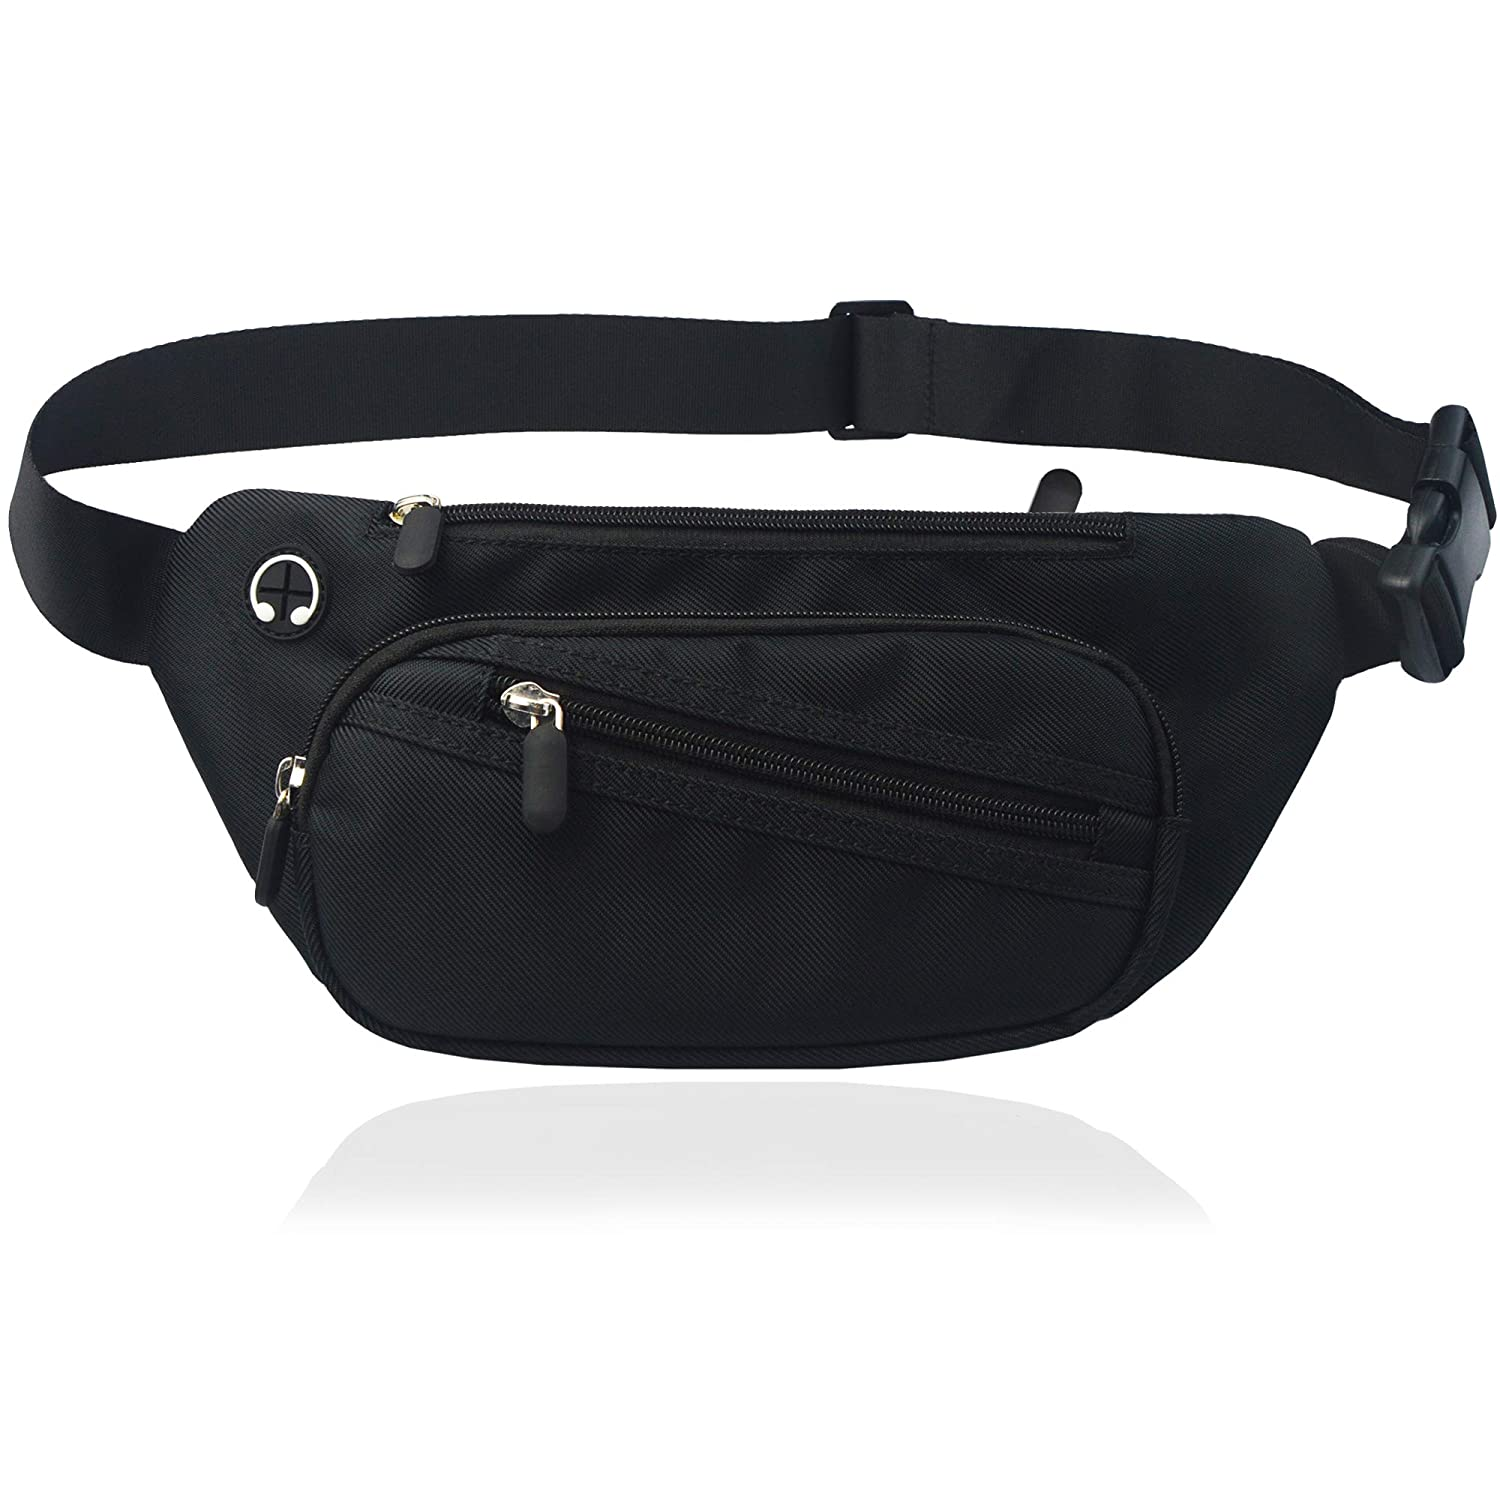 Children's Shoes Hard-Working Cycling Outdoor Unisex Fanny Pack Travel Sport Waist Belt Bag Phone Pocket Pouch Women Belt Bags Waist Pack Mother & Kids